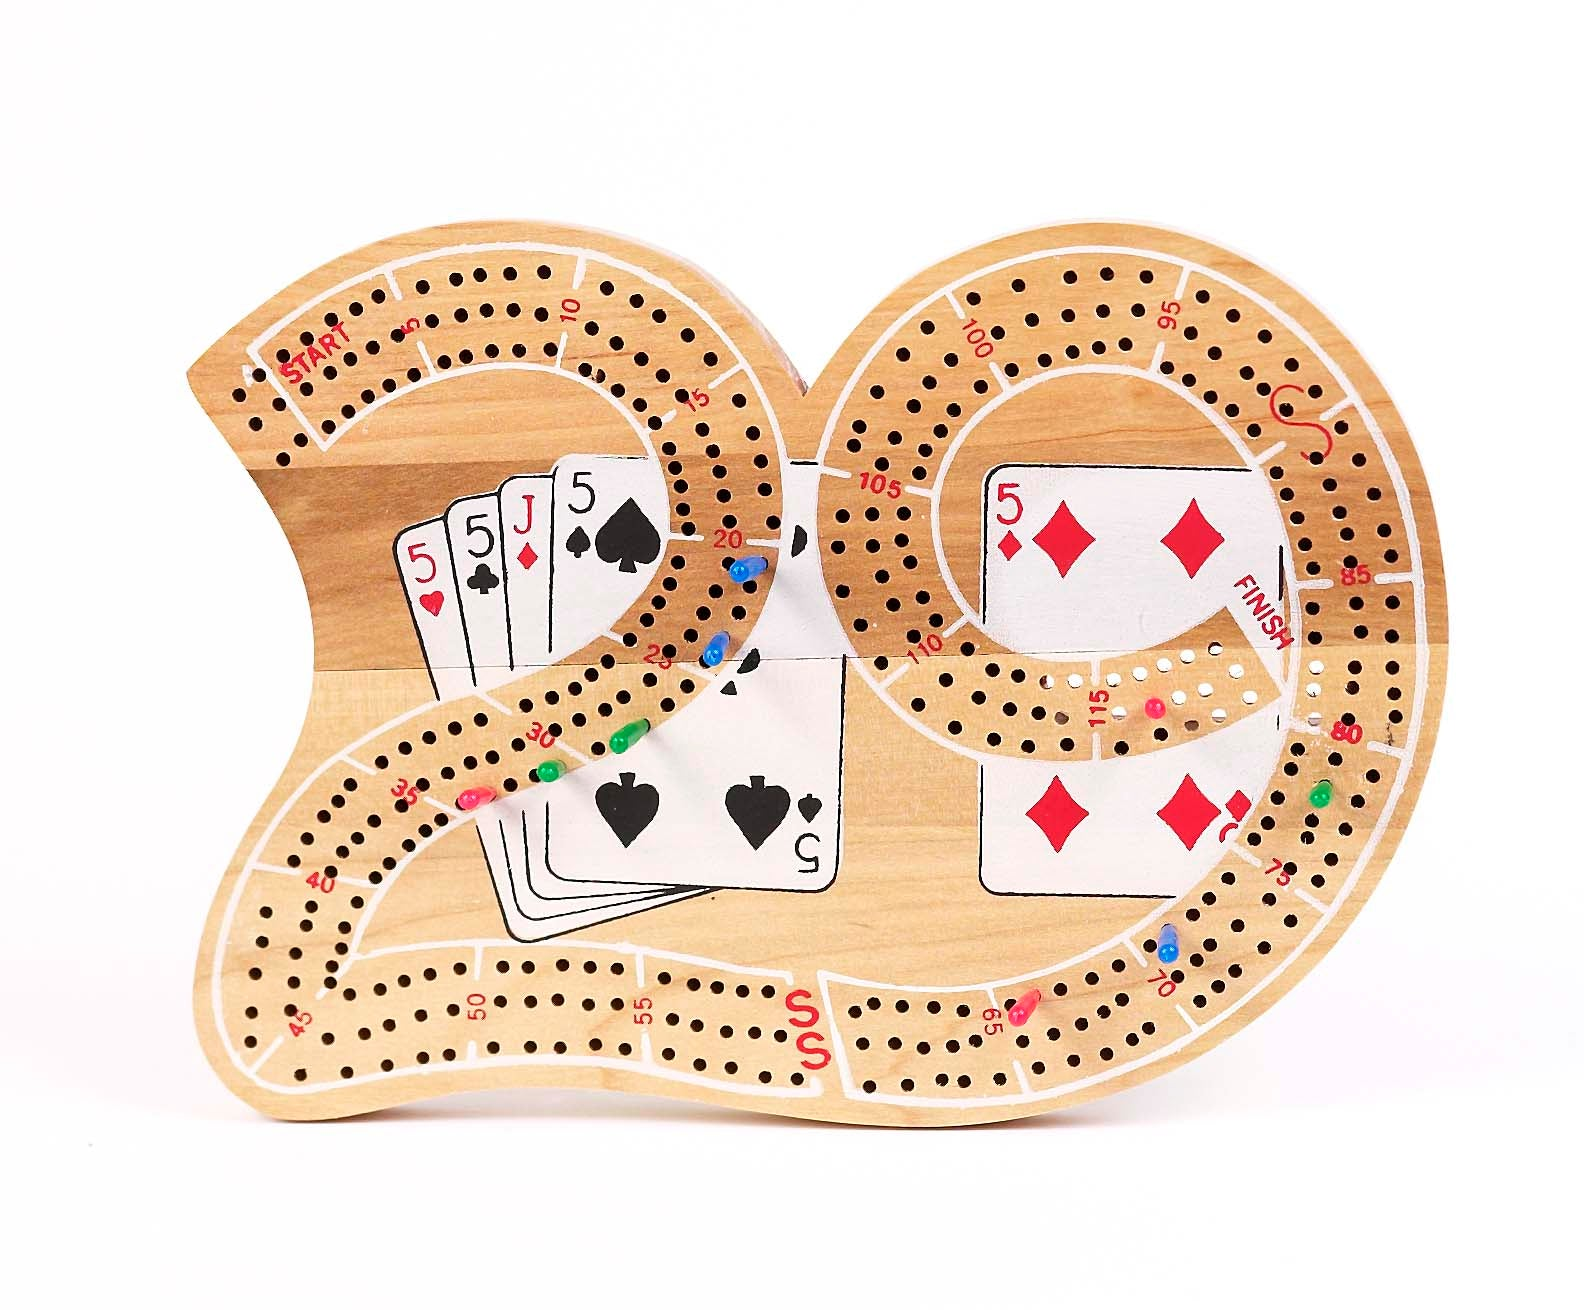 Big 29 Triple Track Wood Cribbage board